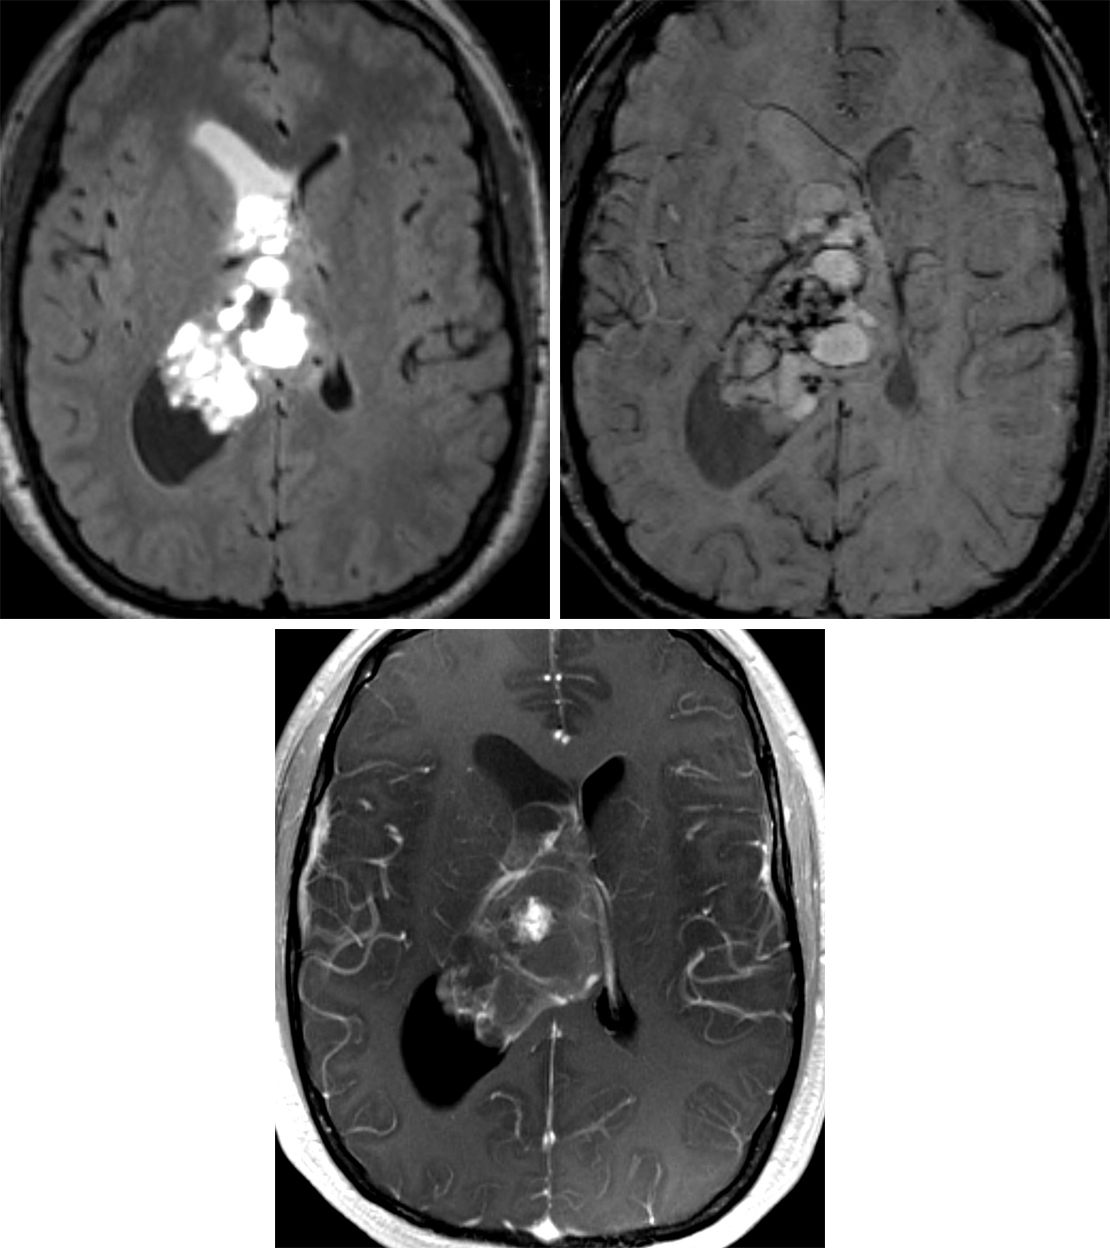 Figure 1: (Top Left) This large central neurocytoma demonstrates its typically cystic feature on axial FLAIR. This image also shows an entrapped right frontal horn indicated by incomplete suppression of cerebrospinal fluid. (Top Right) The SWI image shows dark susceptibility artifact that likely represents calcifications commonly seen in these tumors. (Bottom) Central neurocytomas typically have some enhancement but less than many other tumors, as seen on this postcontrast T1WI.